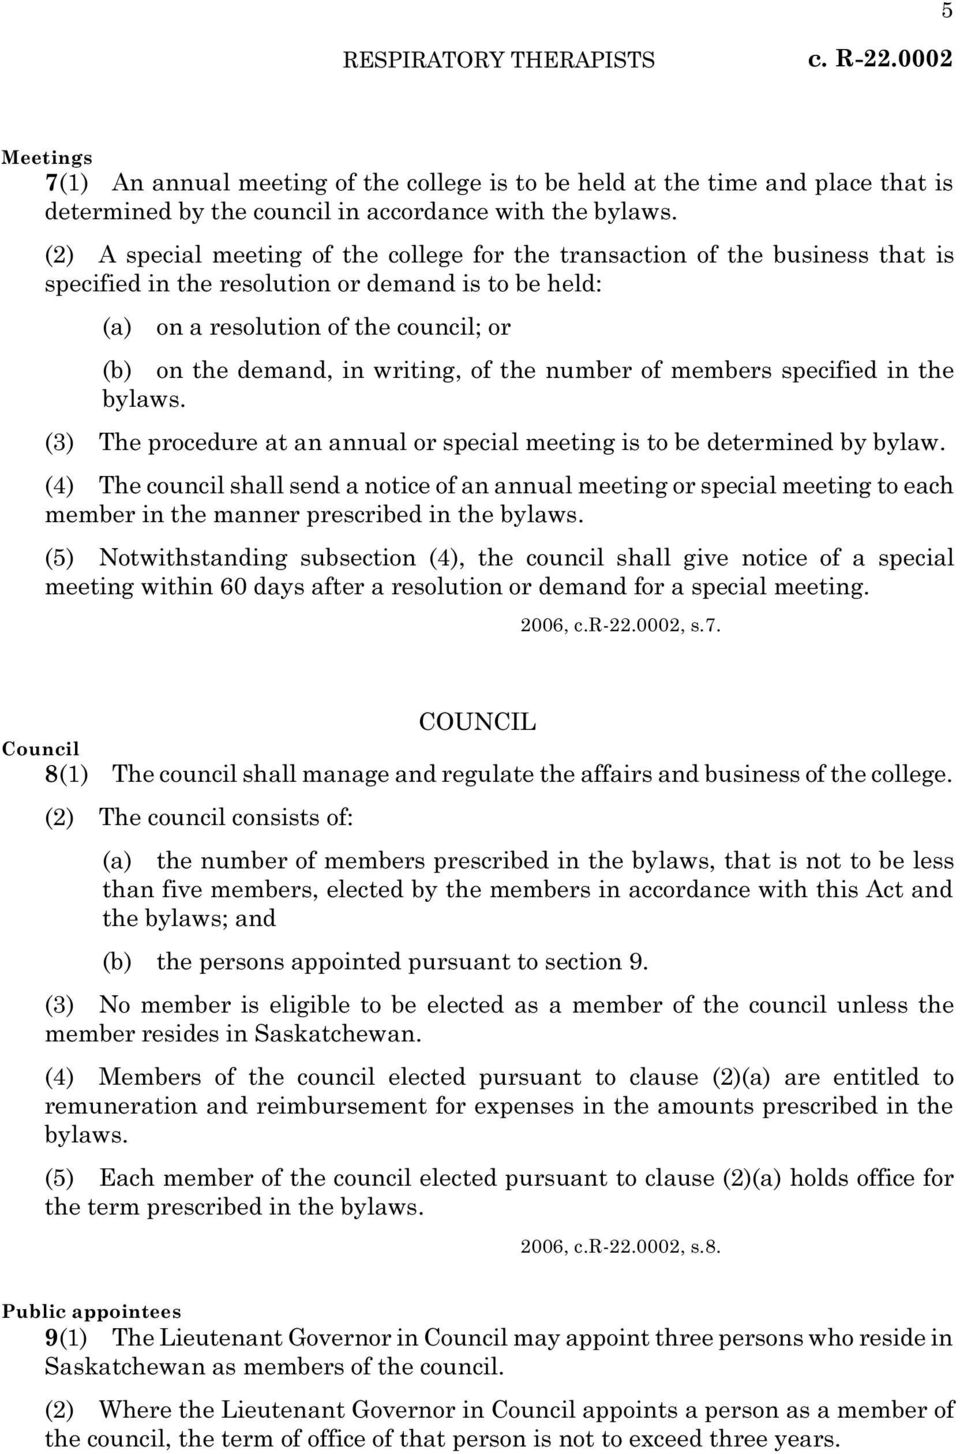 writing, of the number of members specified in the bylaws. (3) The procedure at an annual or special meeting is to be determined by bylaw.